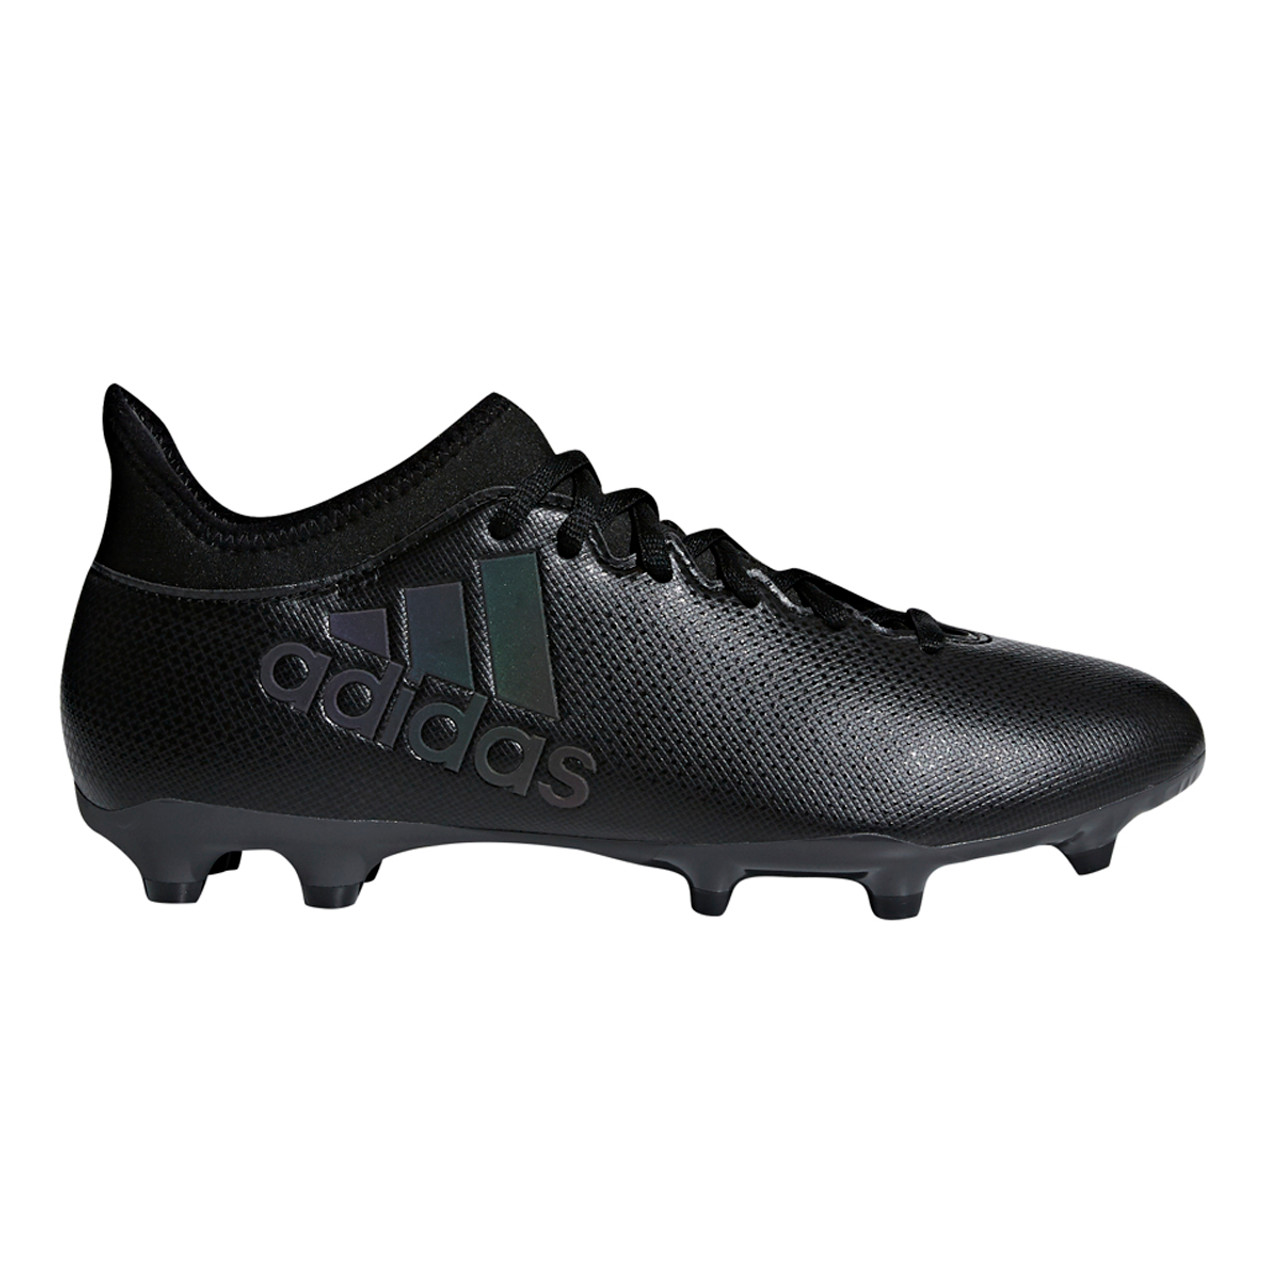 4a33e1f23f43 Adidas X 17.3 FG Men s Soccer Cleats CP9193 - Black